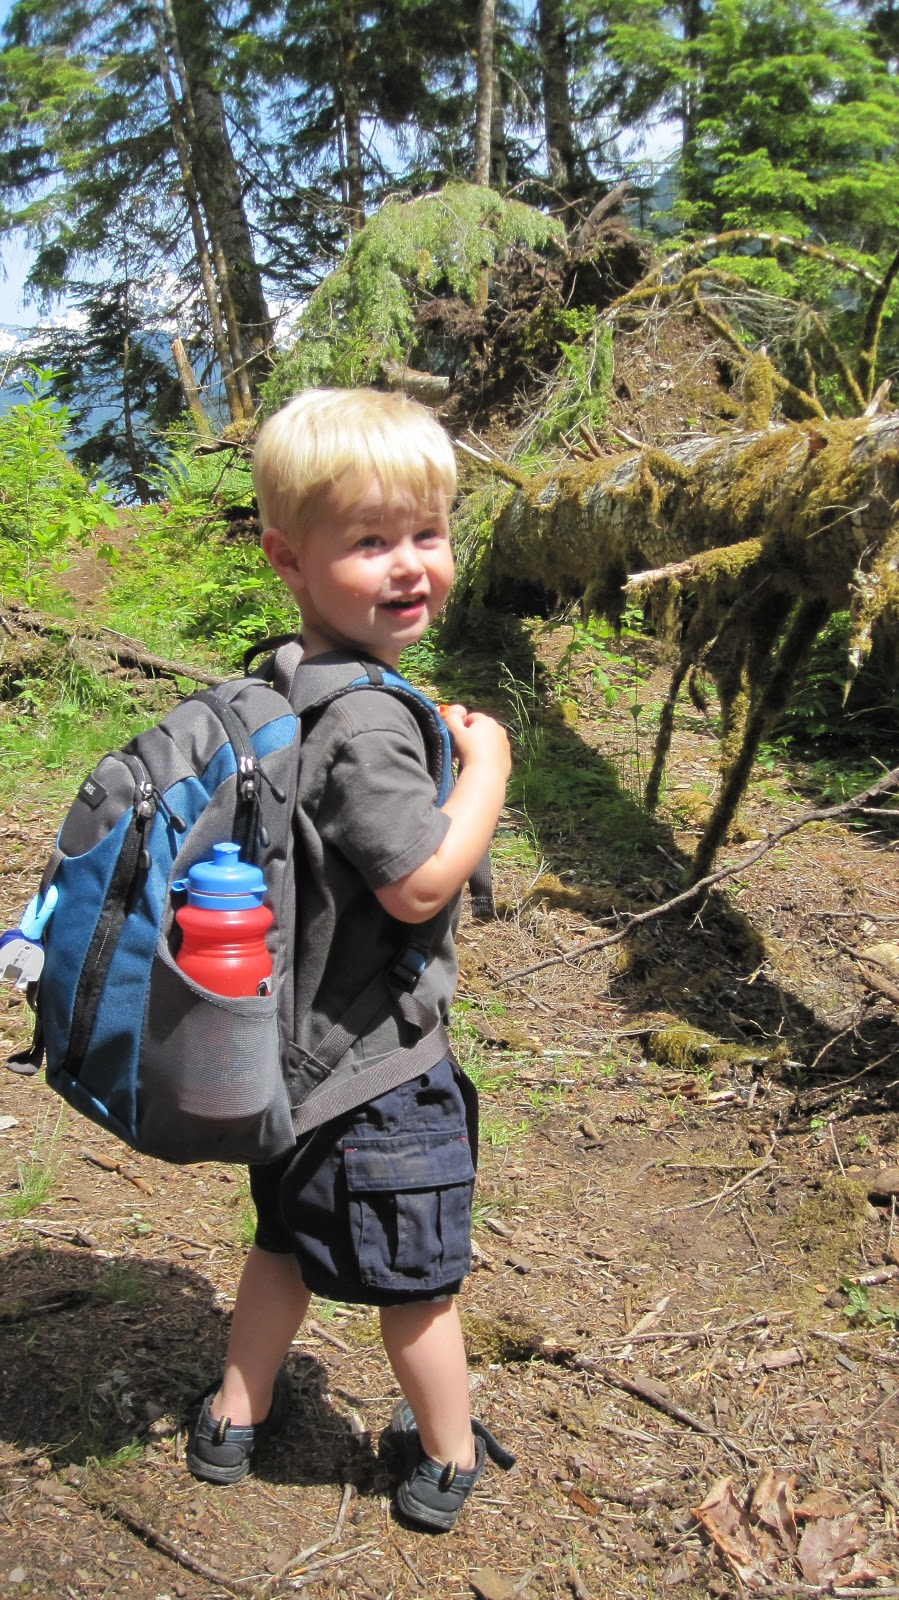 Hiking Backpack For Toddlers sXm3KeK2